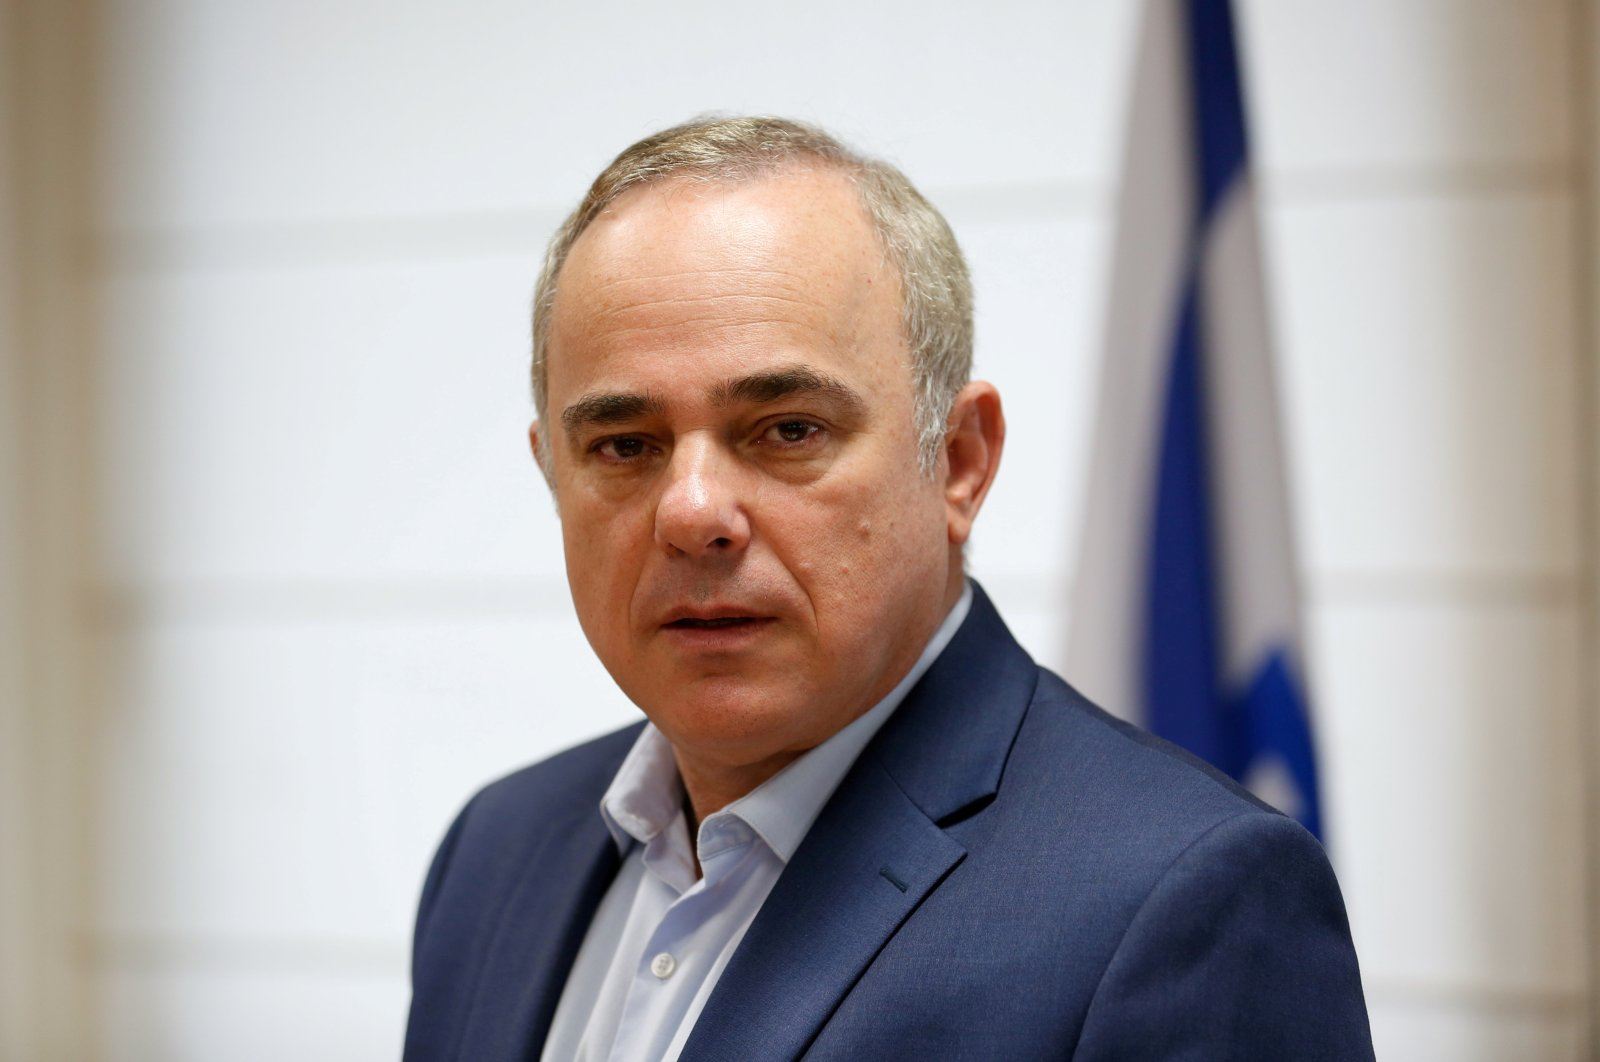 Israeli Energy Minister Yuval Steinitz poses for a photograph during an interview with Reuters, in Jerusalem, Nov. 16, 2016. (Reuters File Photo)